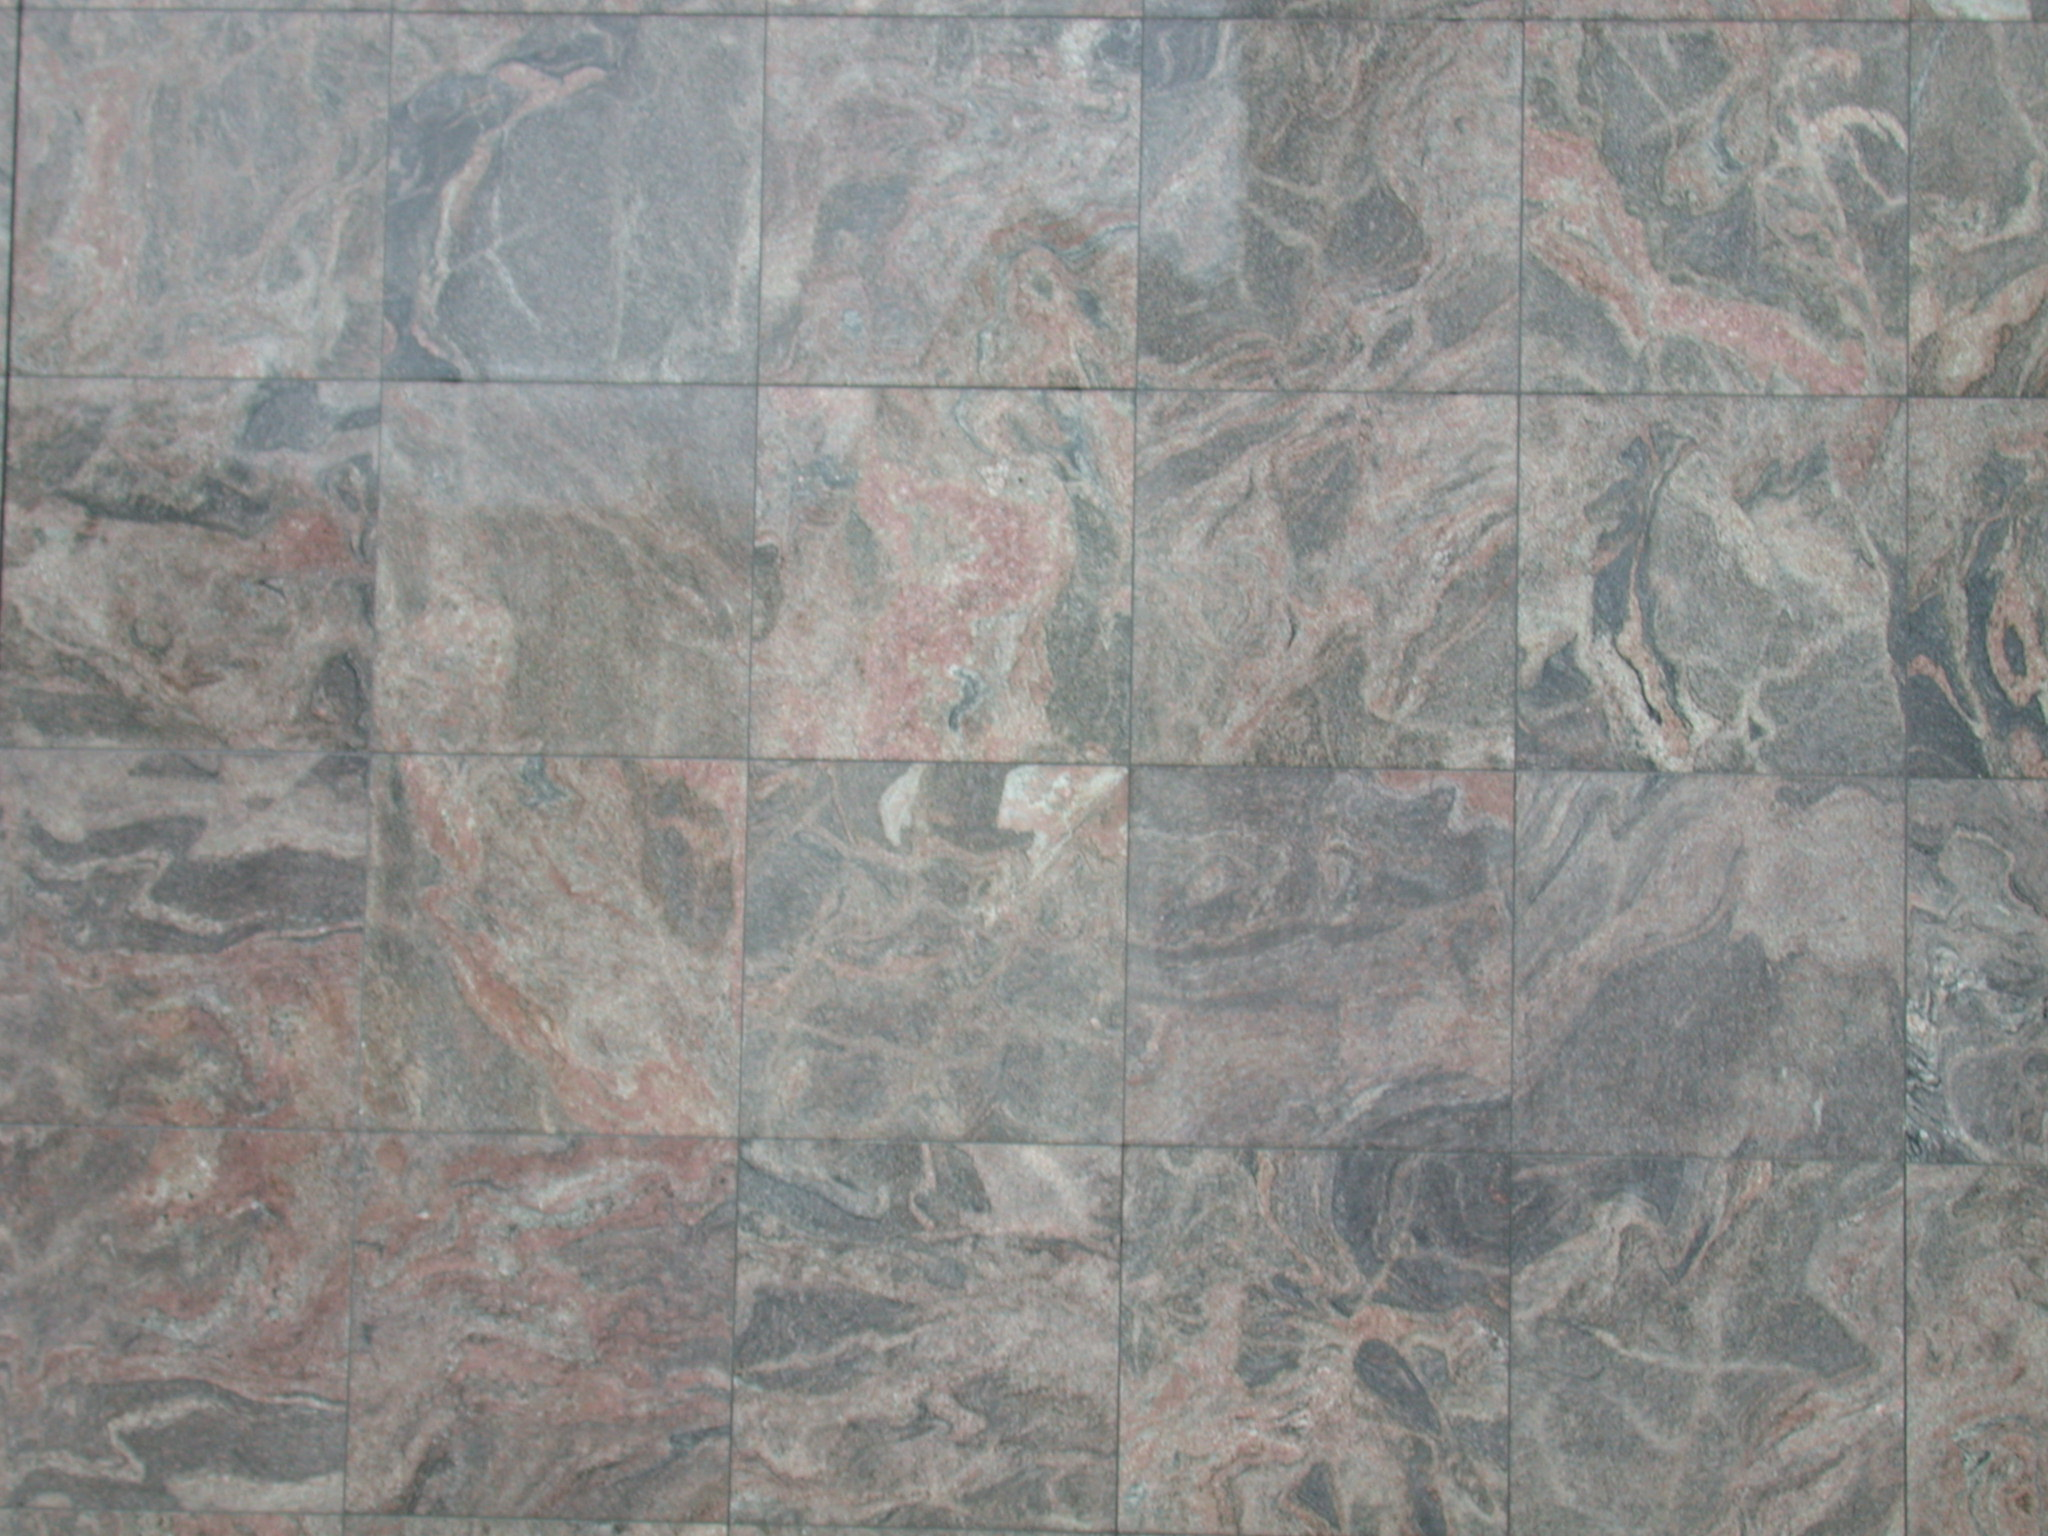 Image After Texture Marble Textures Floor Tiles Tile Flamed